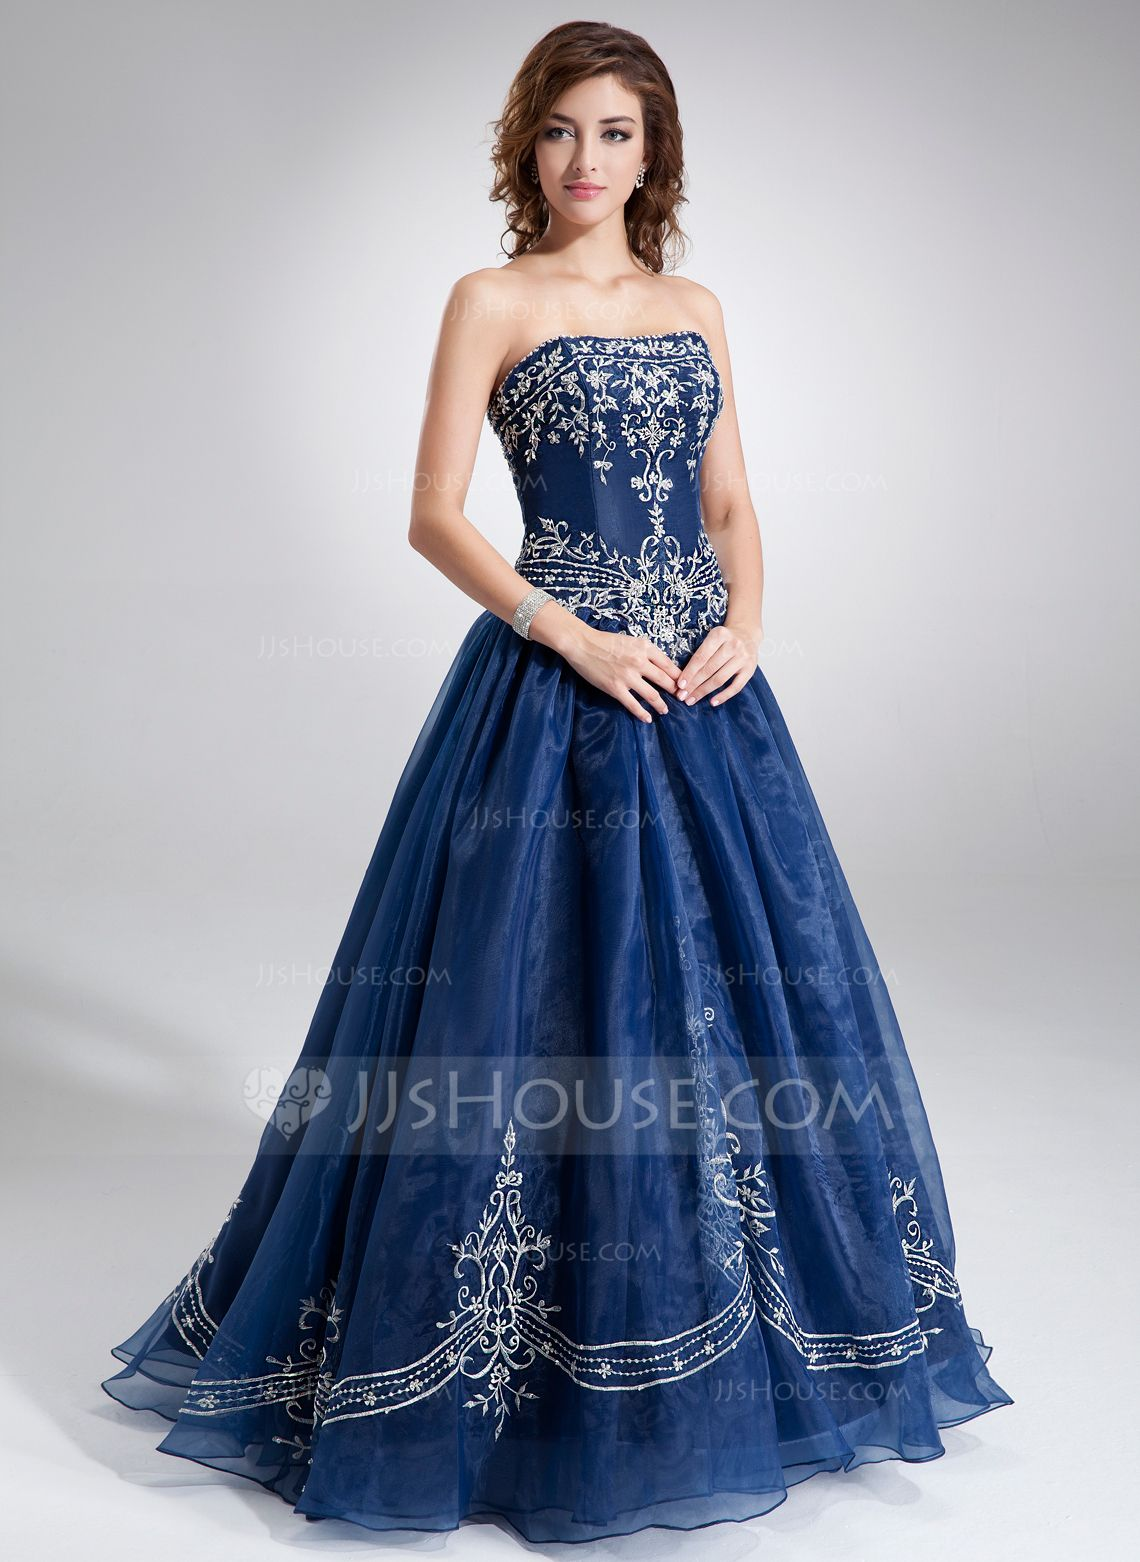 8e2f8459e56 Ball-Gown Sweetheart Floor-Length Organza Quinceanera Dress With Embroidered  Beading (021004556) - JJsHouse